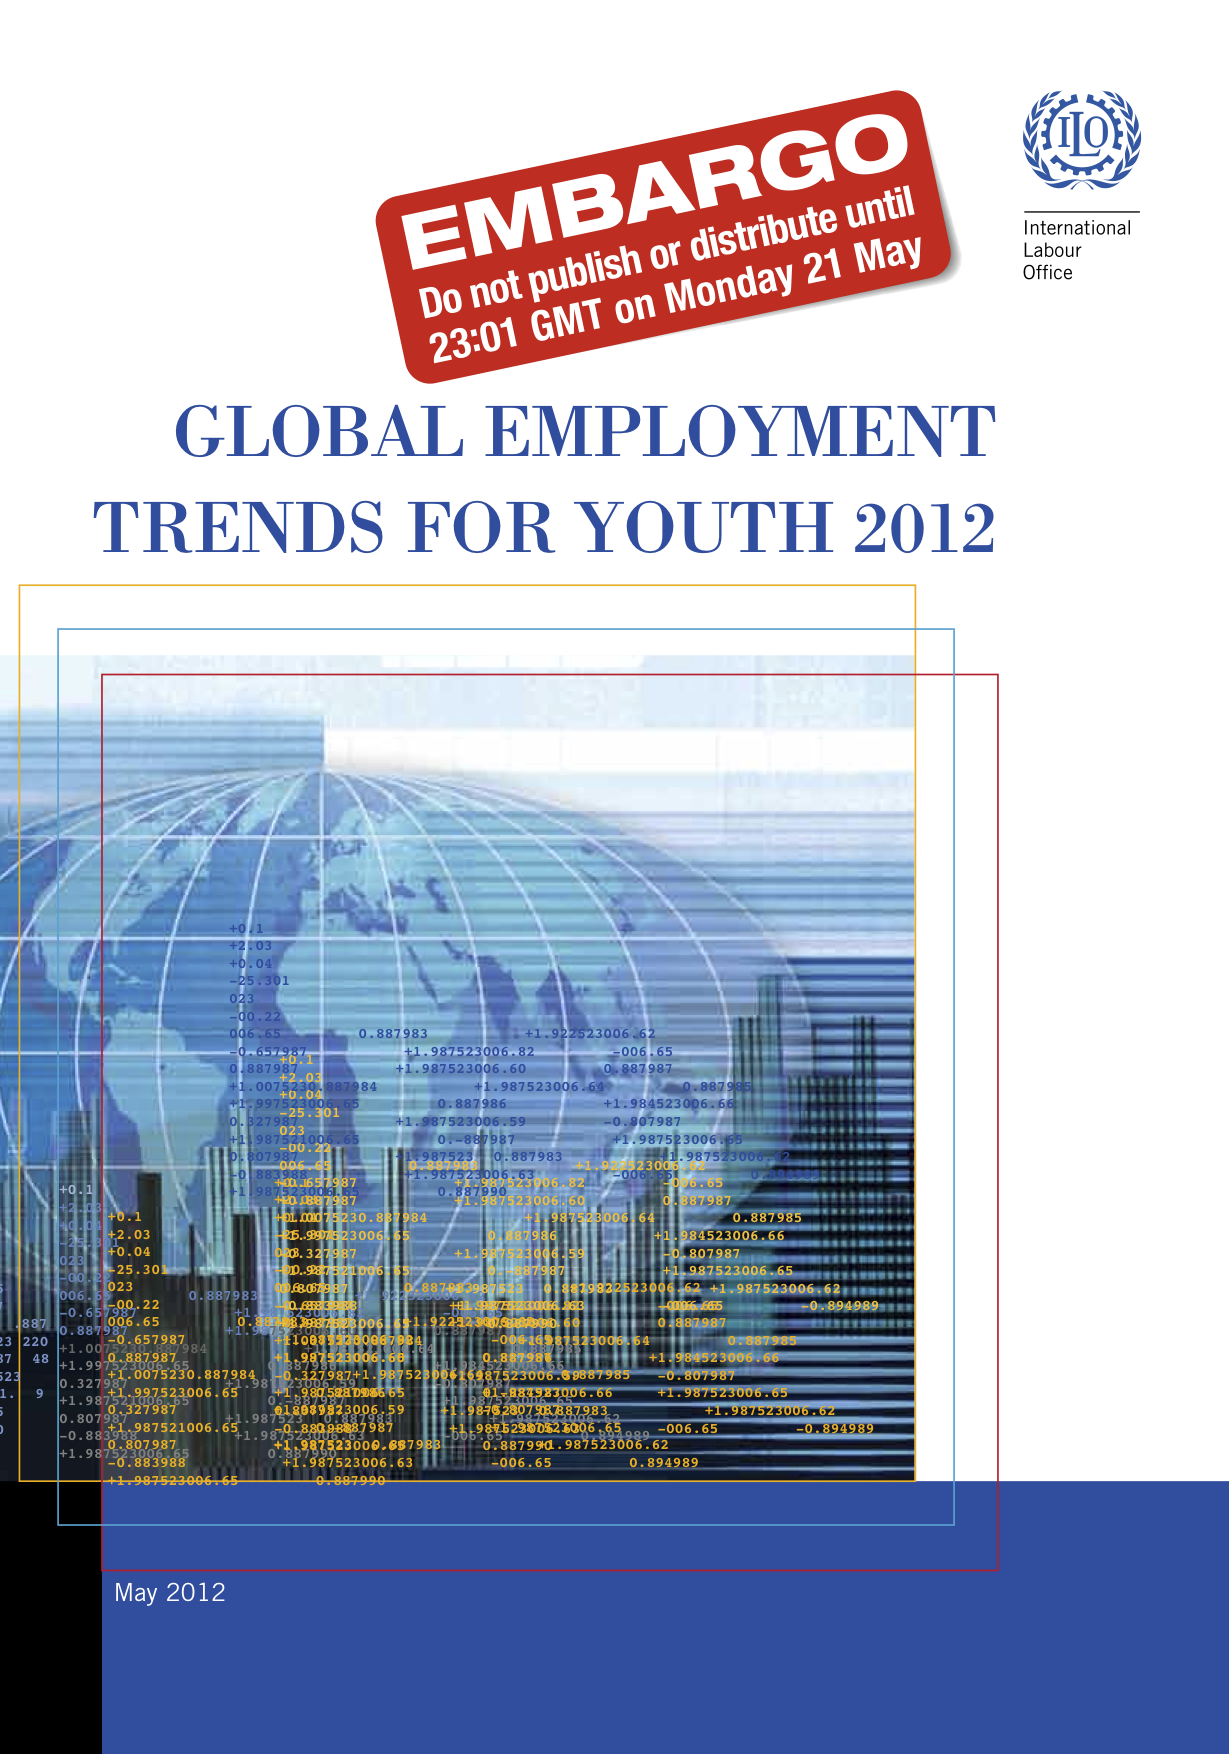 Read here Global Employment Trends for Youth 2012 by International Labour Organization (ILO)    http://www.ilo.org/wcmsp5/groups/public/---dgreports/---dcomm/documents/publication/wcms_180976.pdf